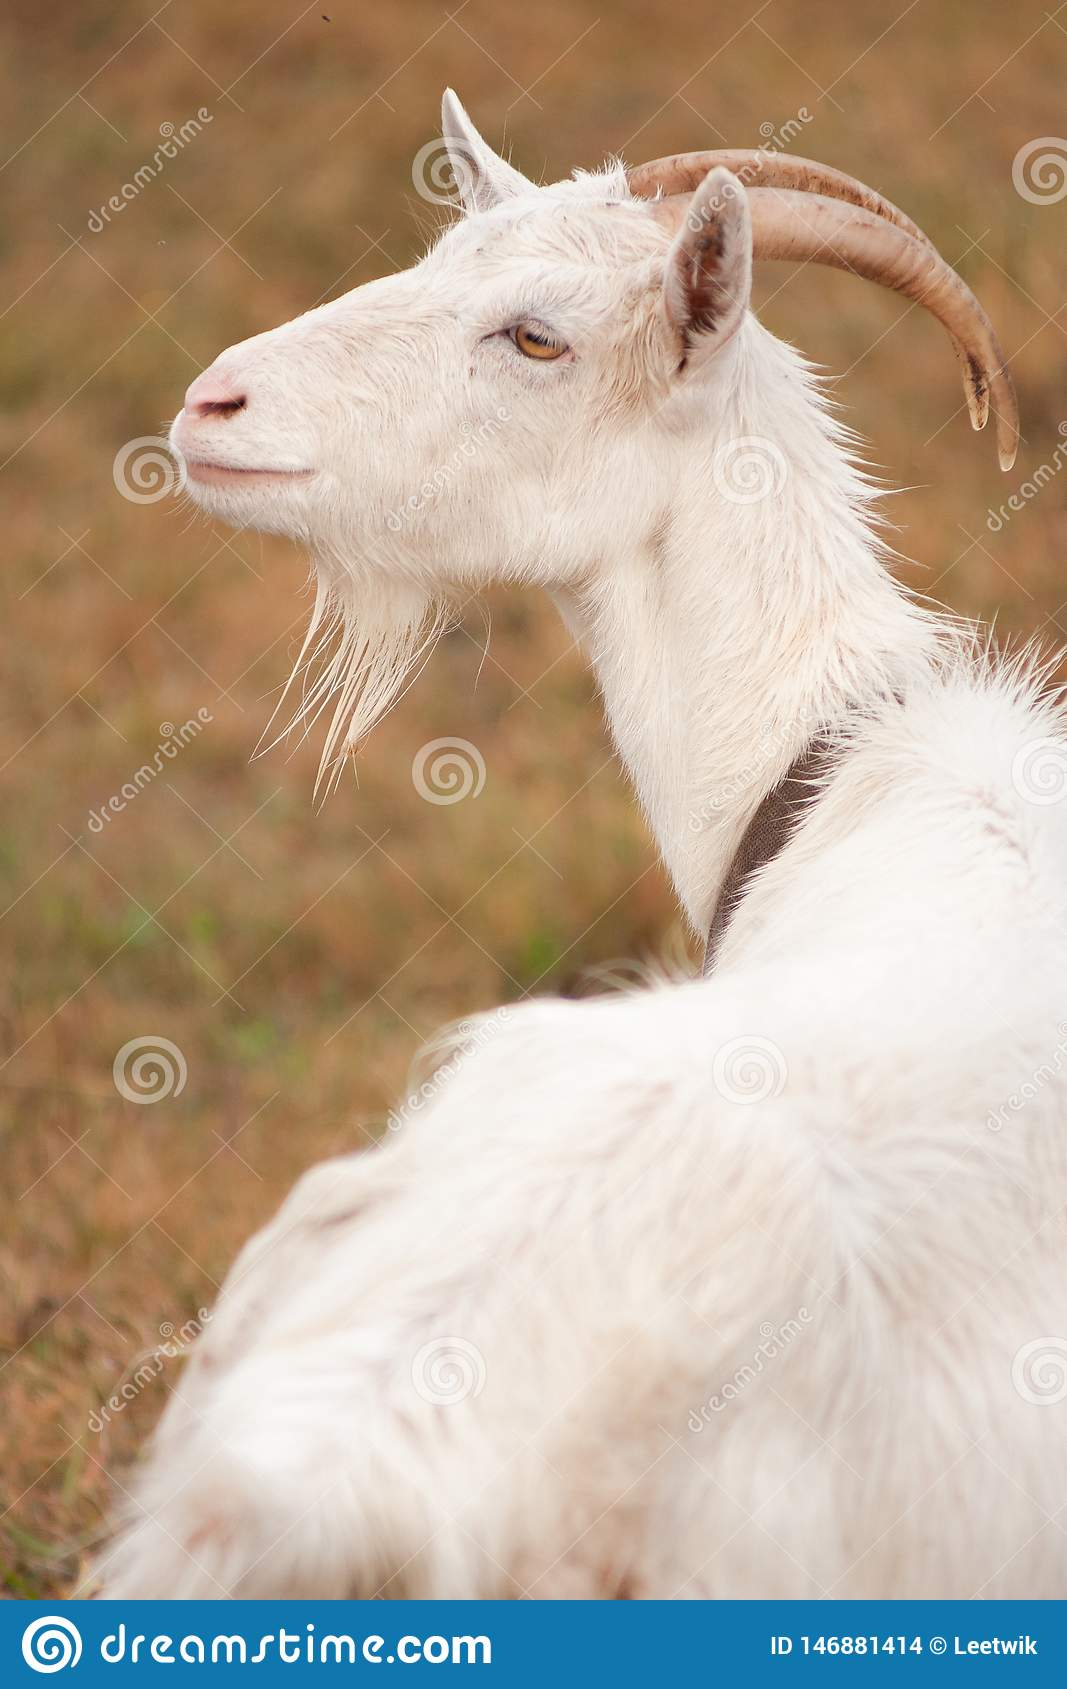 Close-up portrait of a beautiful white goat with a wistful gaze in nature